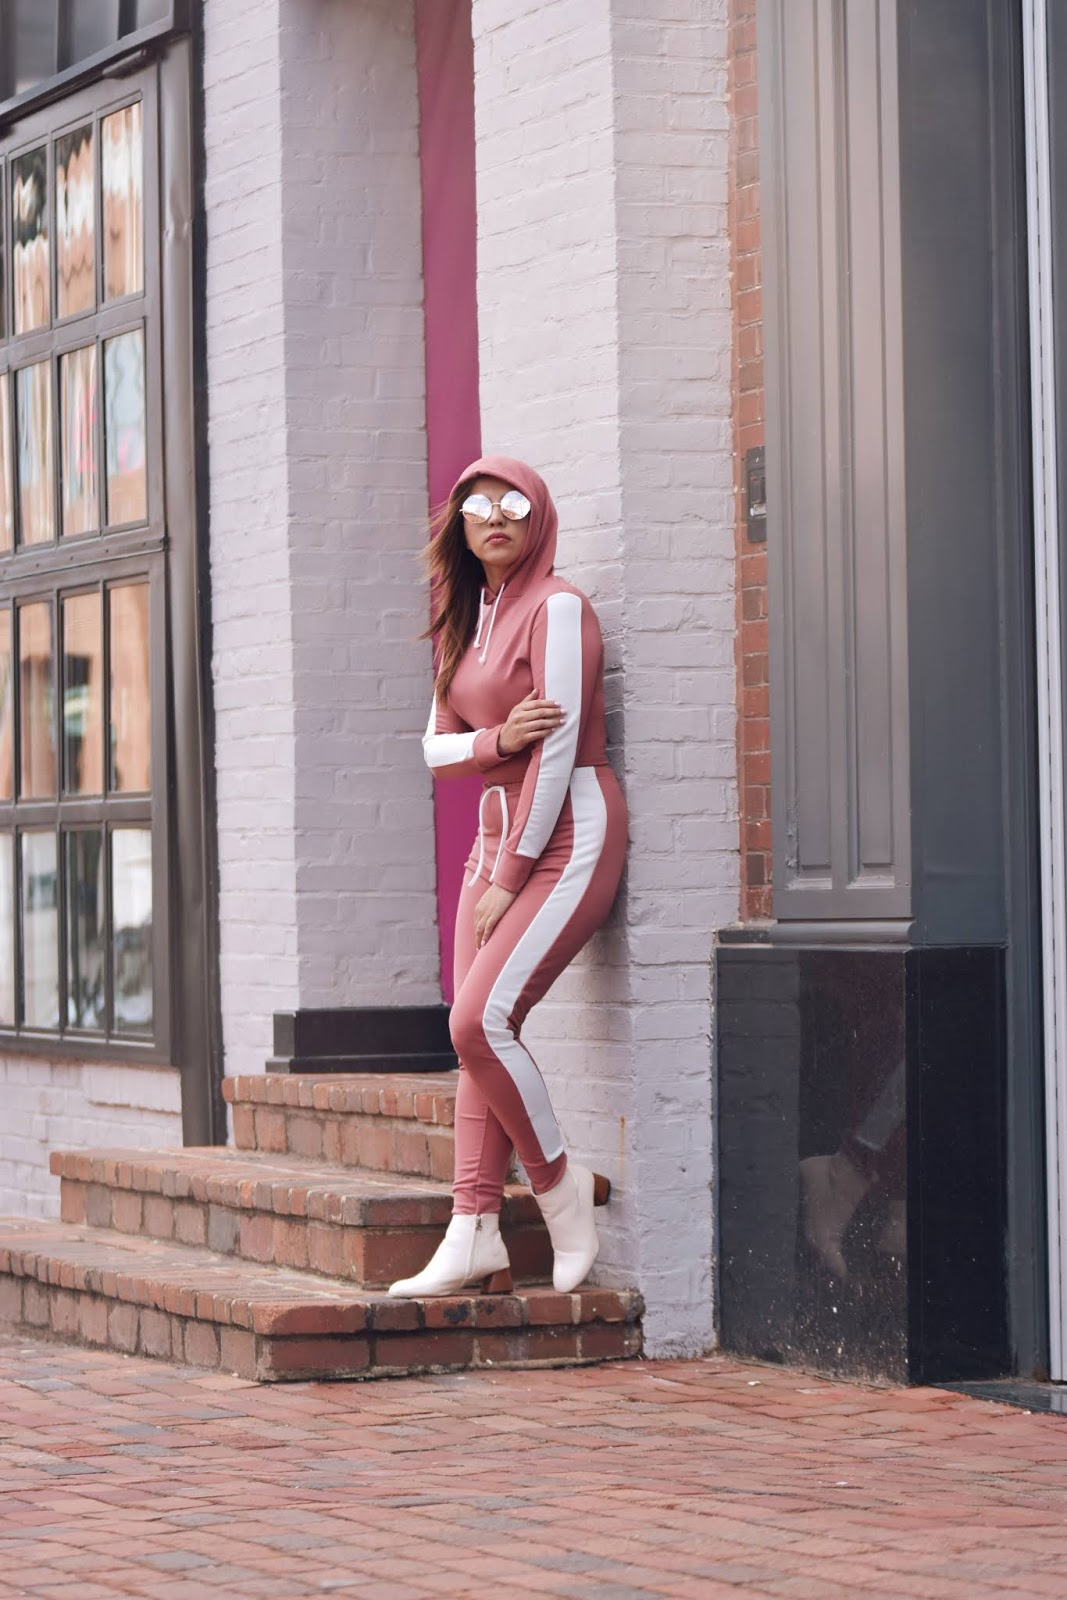 Dusky Pink With White Stripe Lounge Wear Set-MariEstilo-DCBlogger-Travel Blogger-Fashion blogger-blog de moda-blog de viajes-street style-